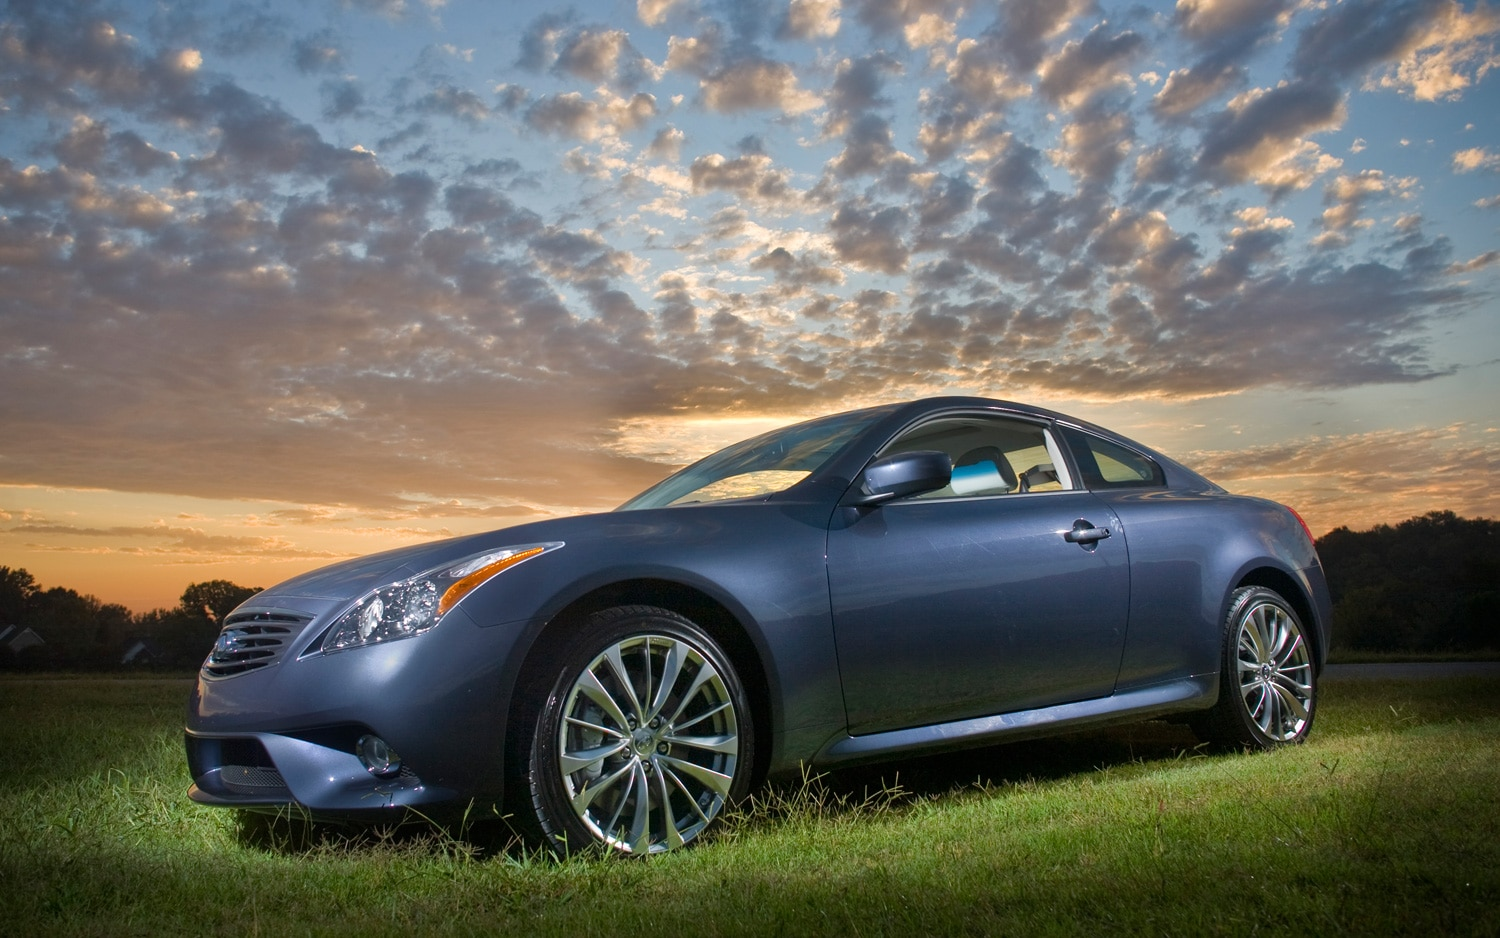 2013 Infiniti G37 Coupe Front Three Quarter1